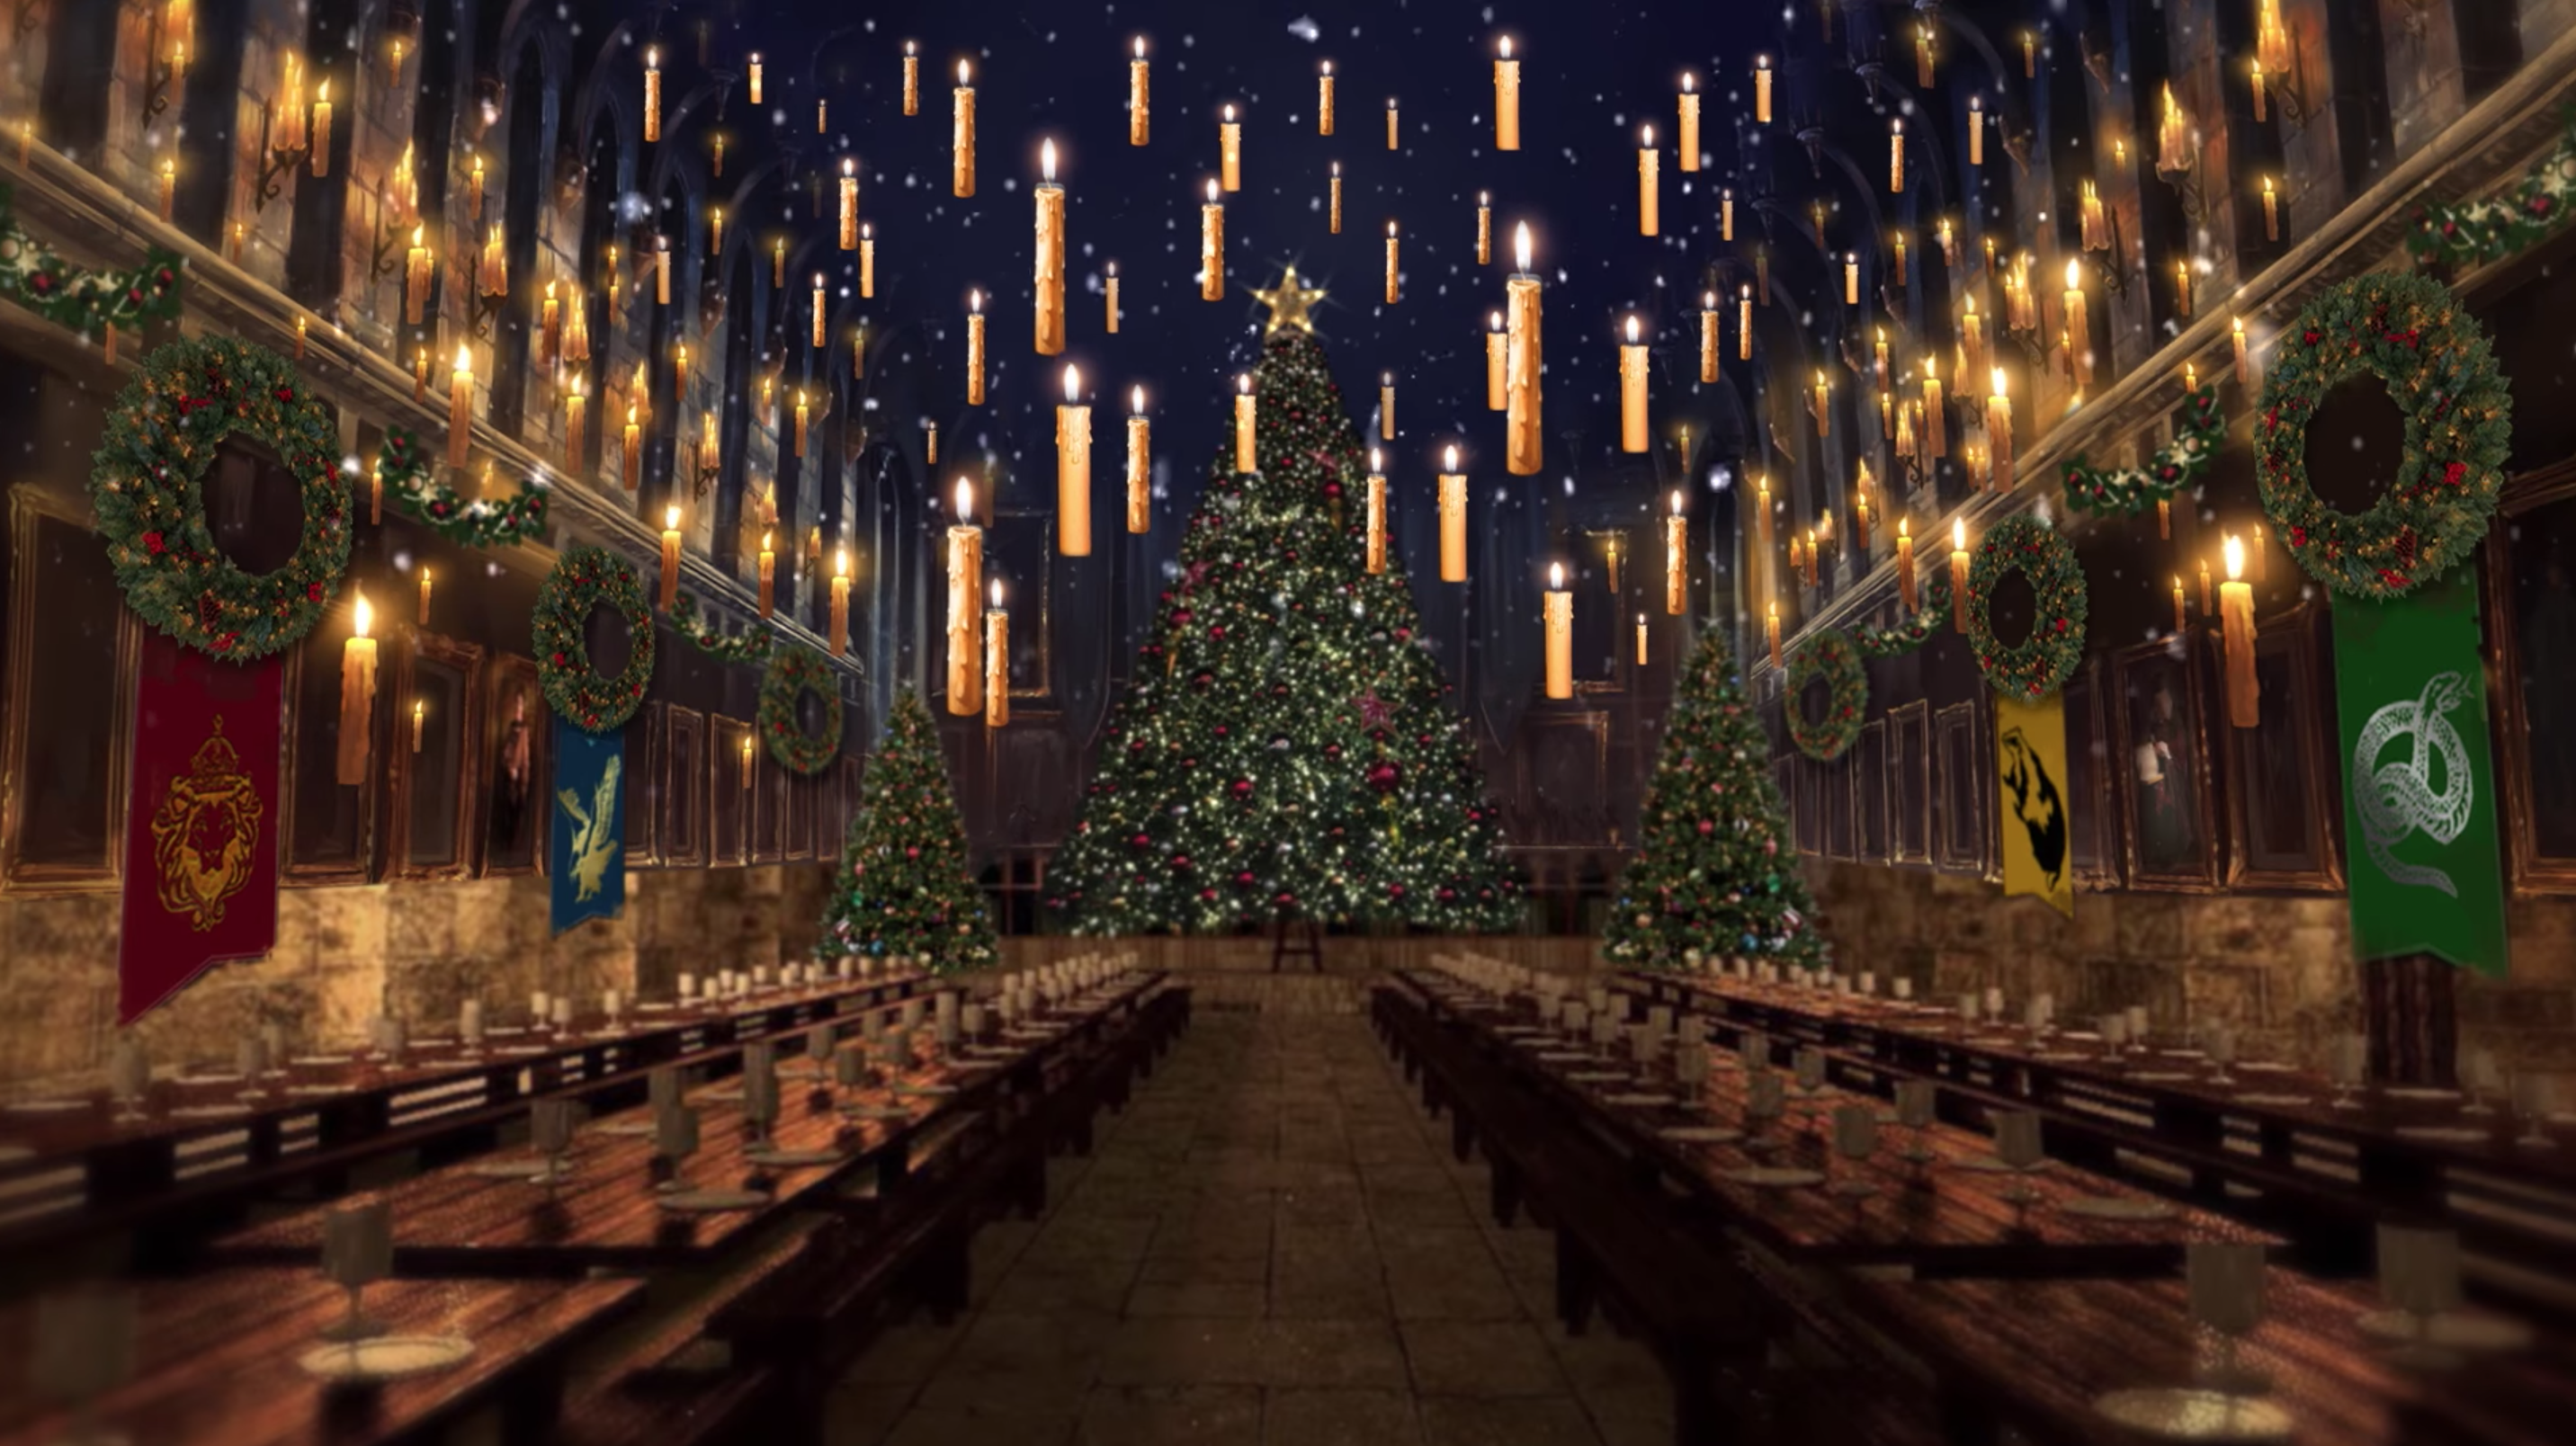 Harry Says Relax These Potter Themed Asmr Videos Are So Calming Harry Potter Pictures Harry Potter Wallpaper Hogwarts Christmas